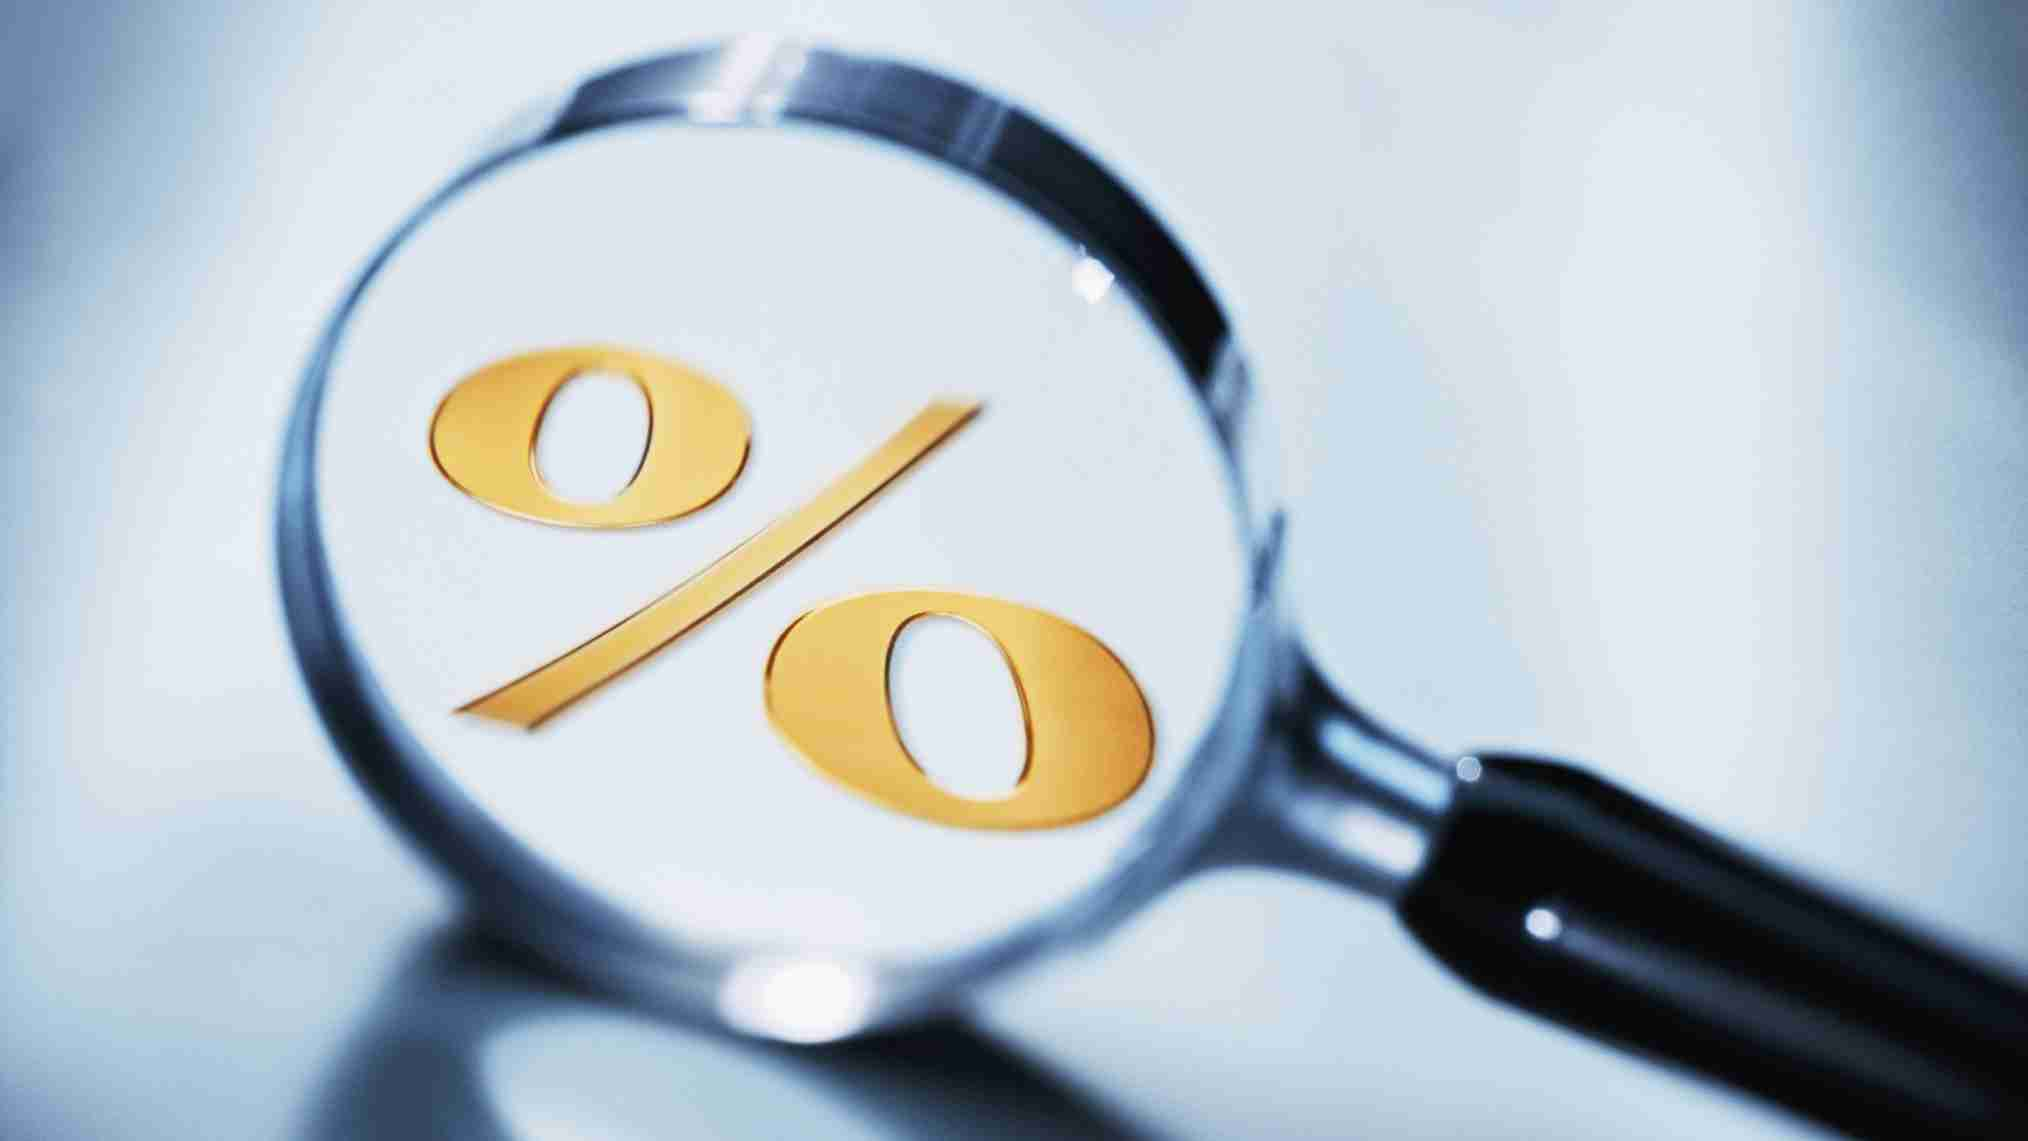 China's central SOEs see lower asset-liability ratio